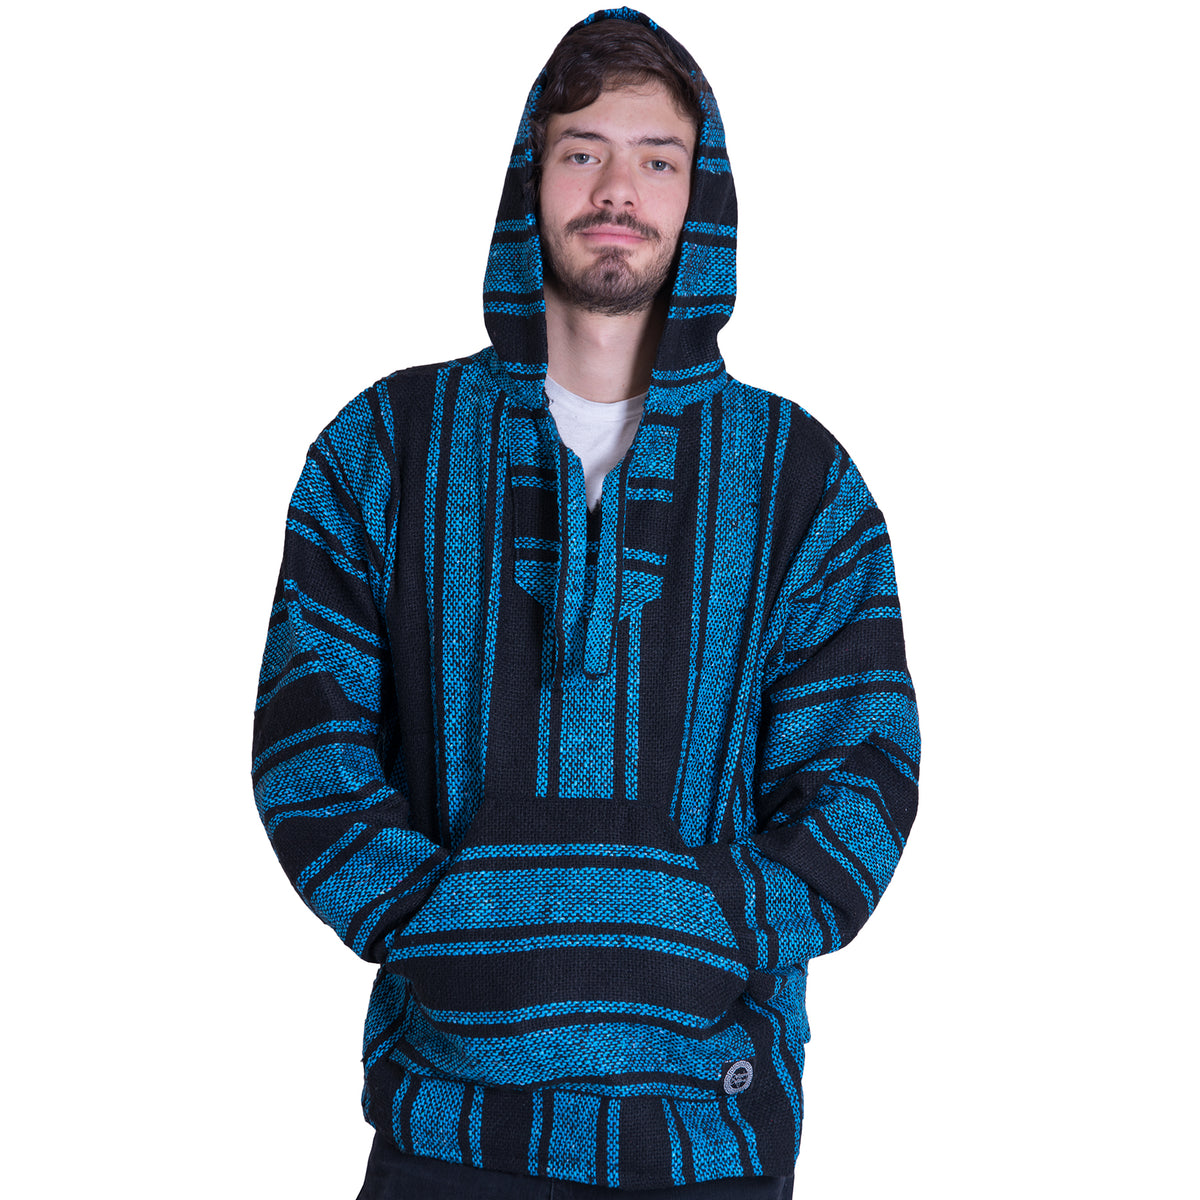 Details about AUTHENTIC MEXICAN PONCHO HOODIE SWEATER FROM MEXICO BLACK BLUE FLANNEL LARGE